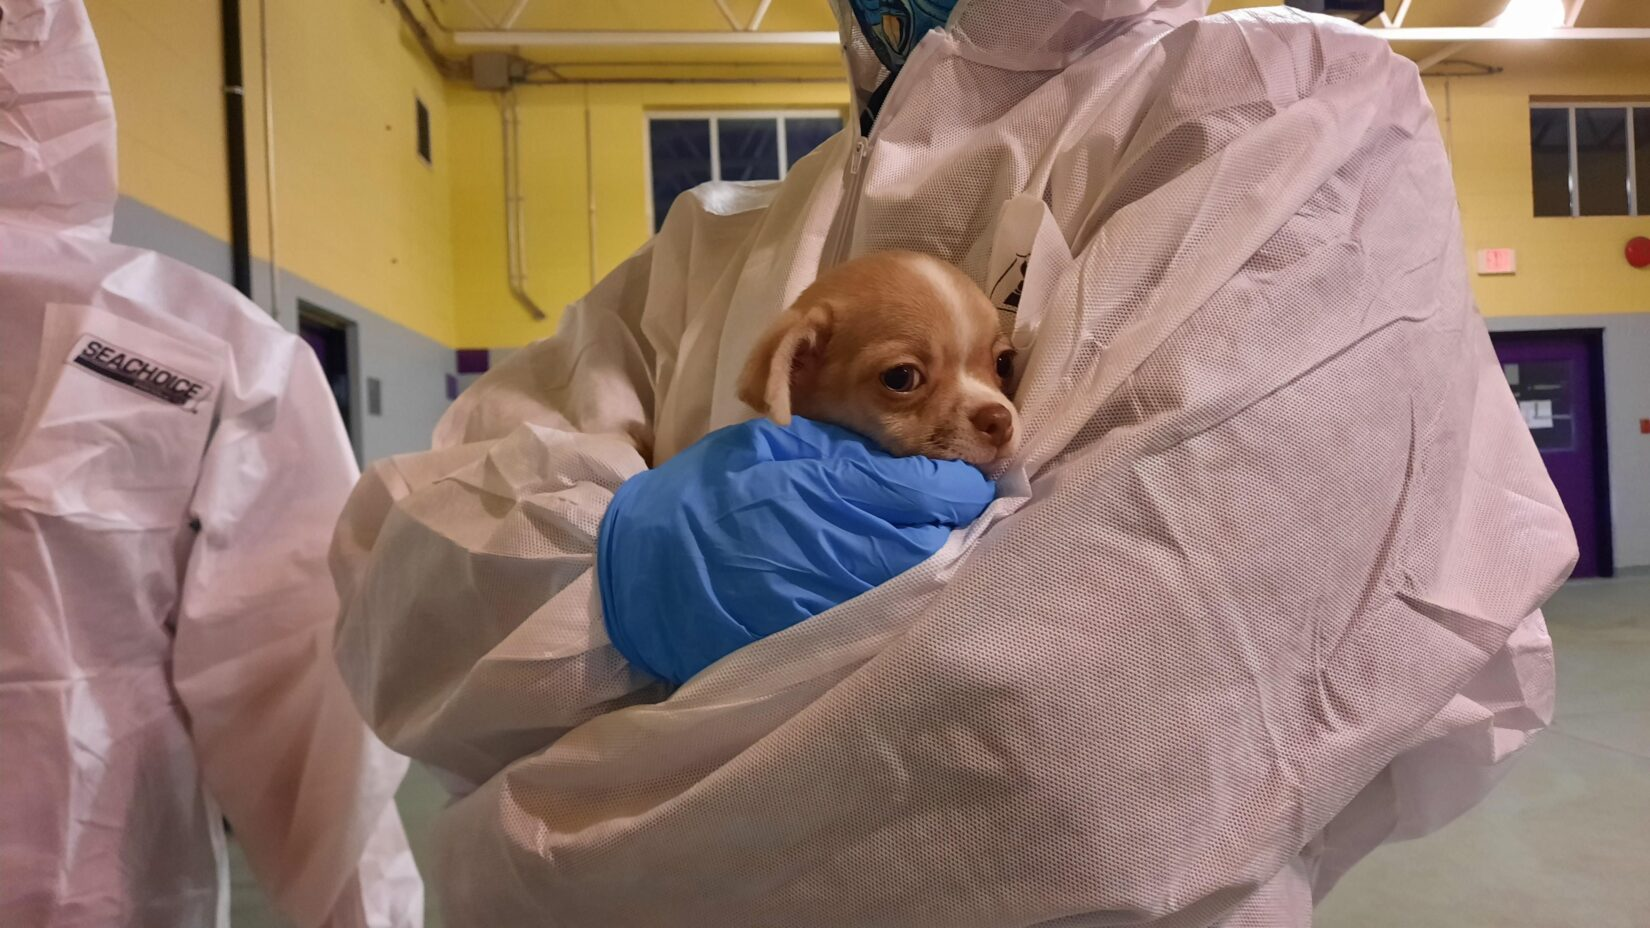 small puppy neing held by staff in tyvek suit ppe